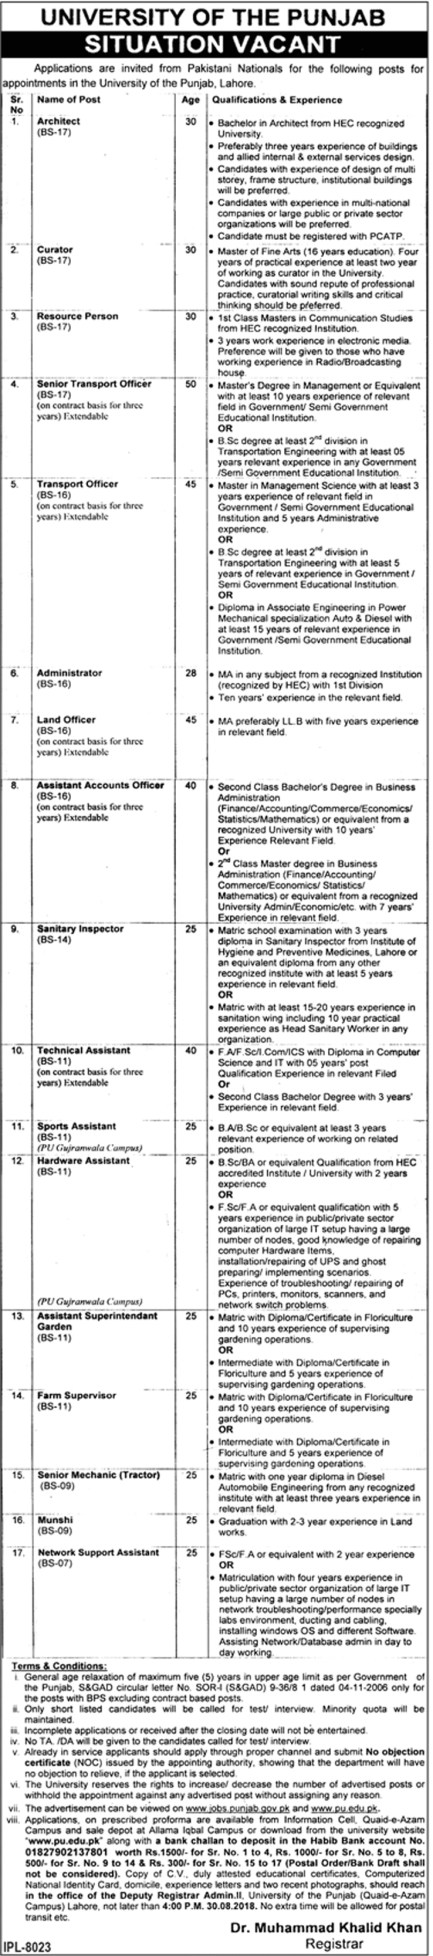 Punjab University Lahore Jobs 2018 August Advertisement www.pu.edu.pk